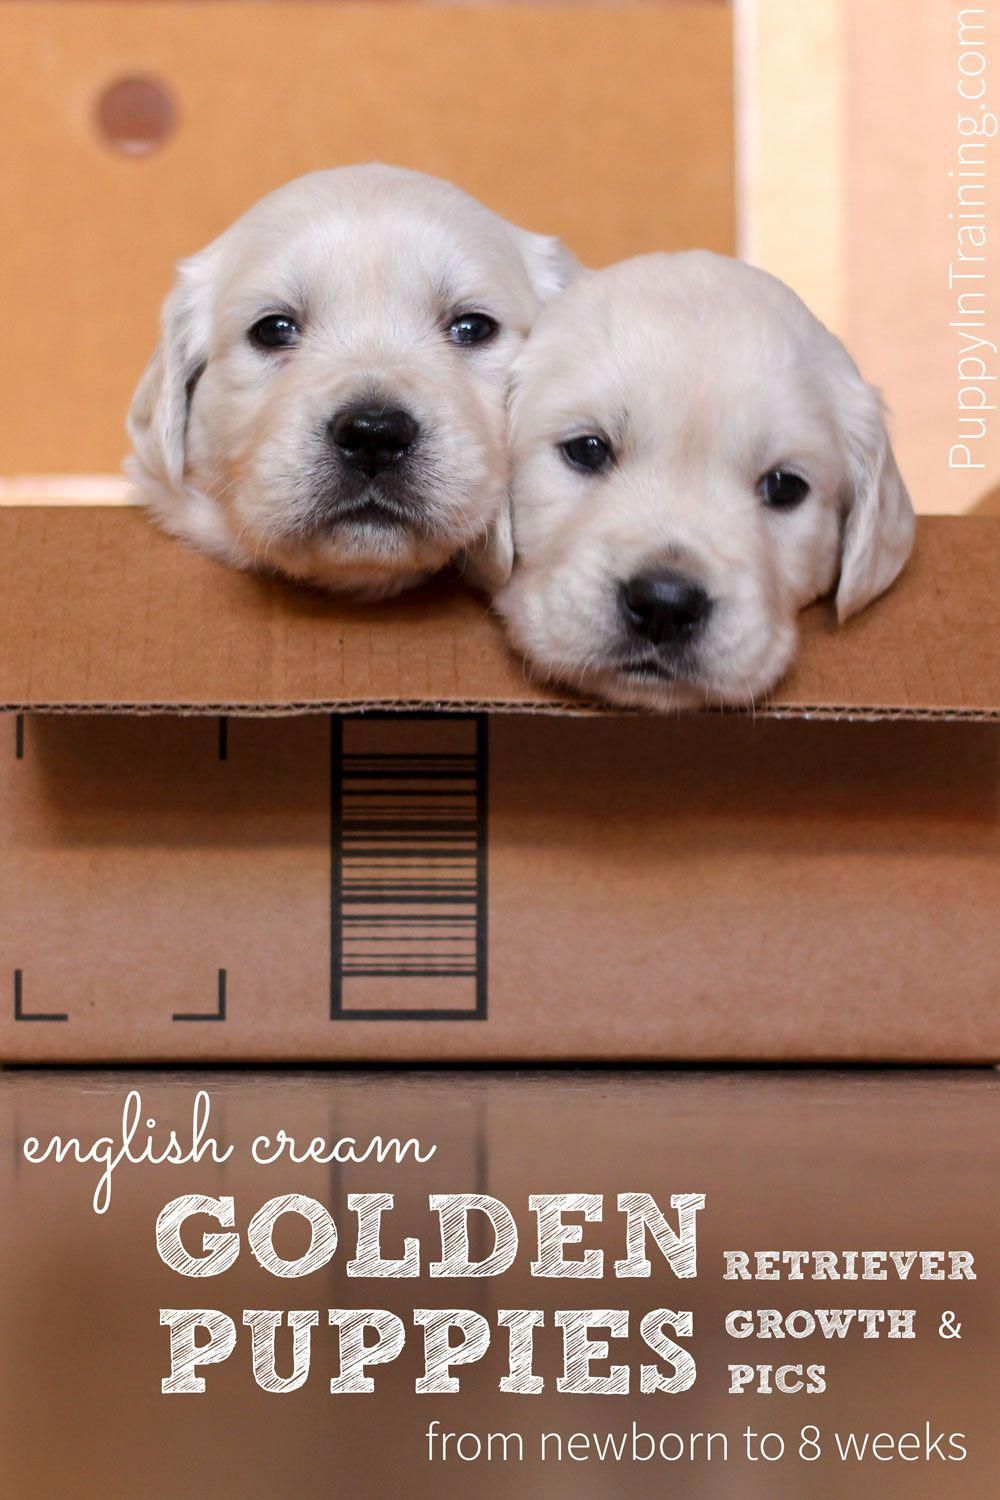 Check Out These Adorable Pics And Development Stages Of English